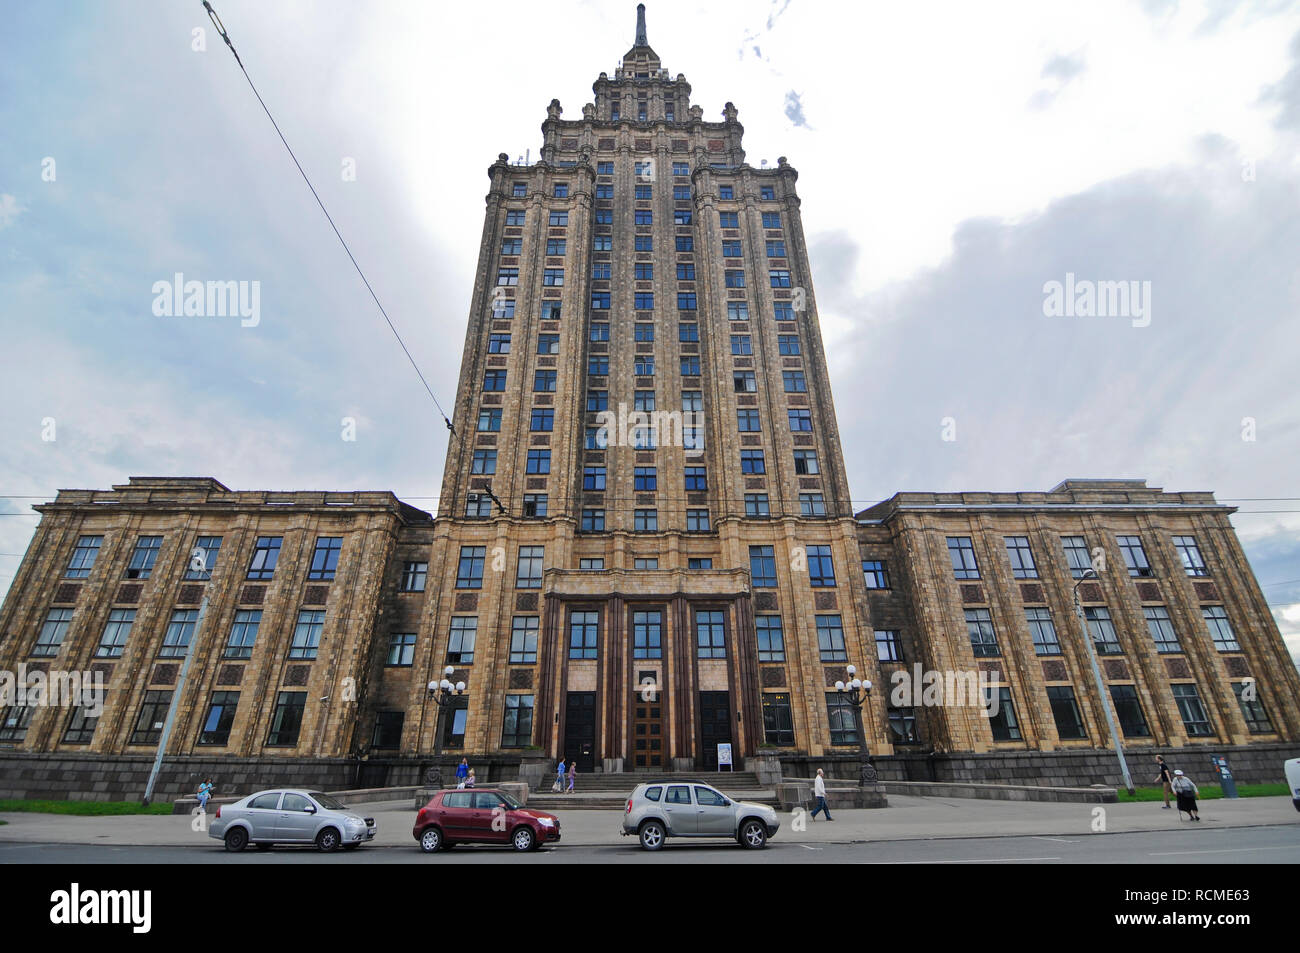 Latvian Academy of Sciences, Riga - Stock Image